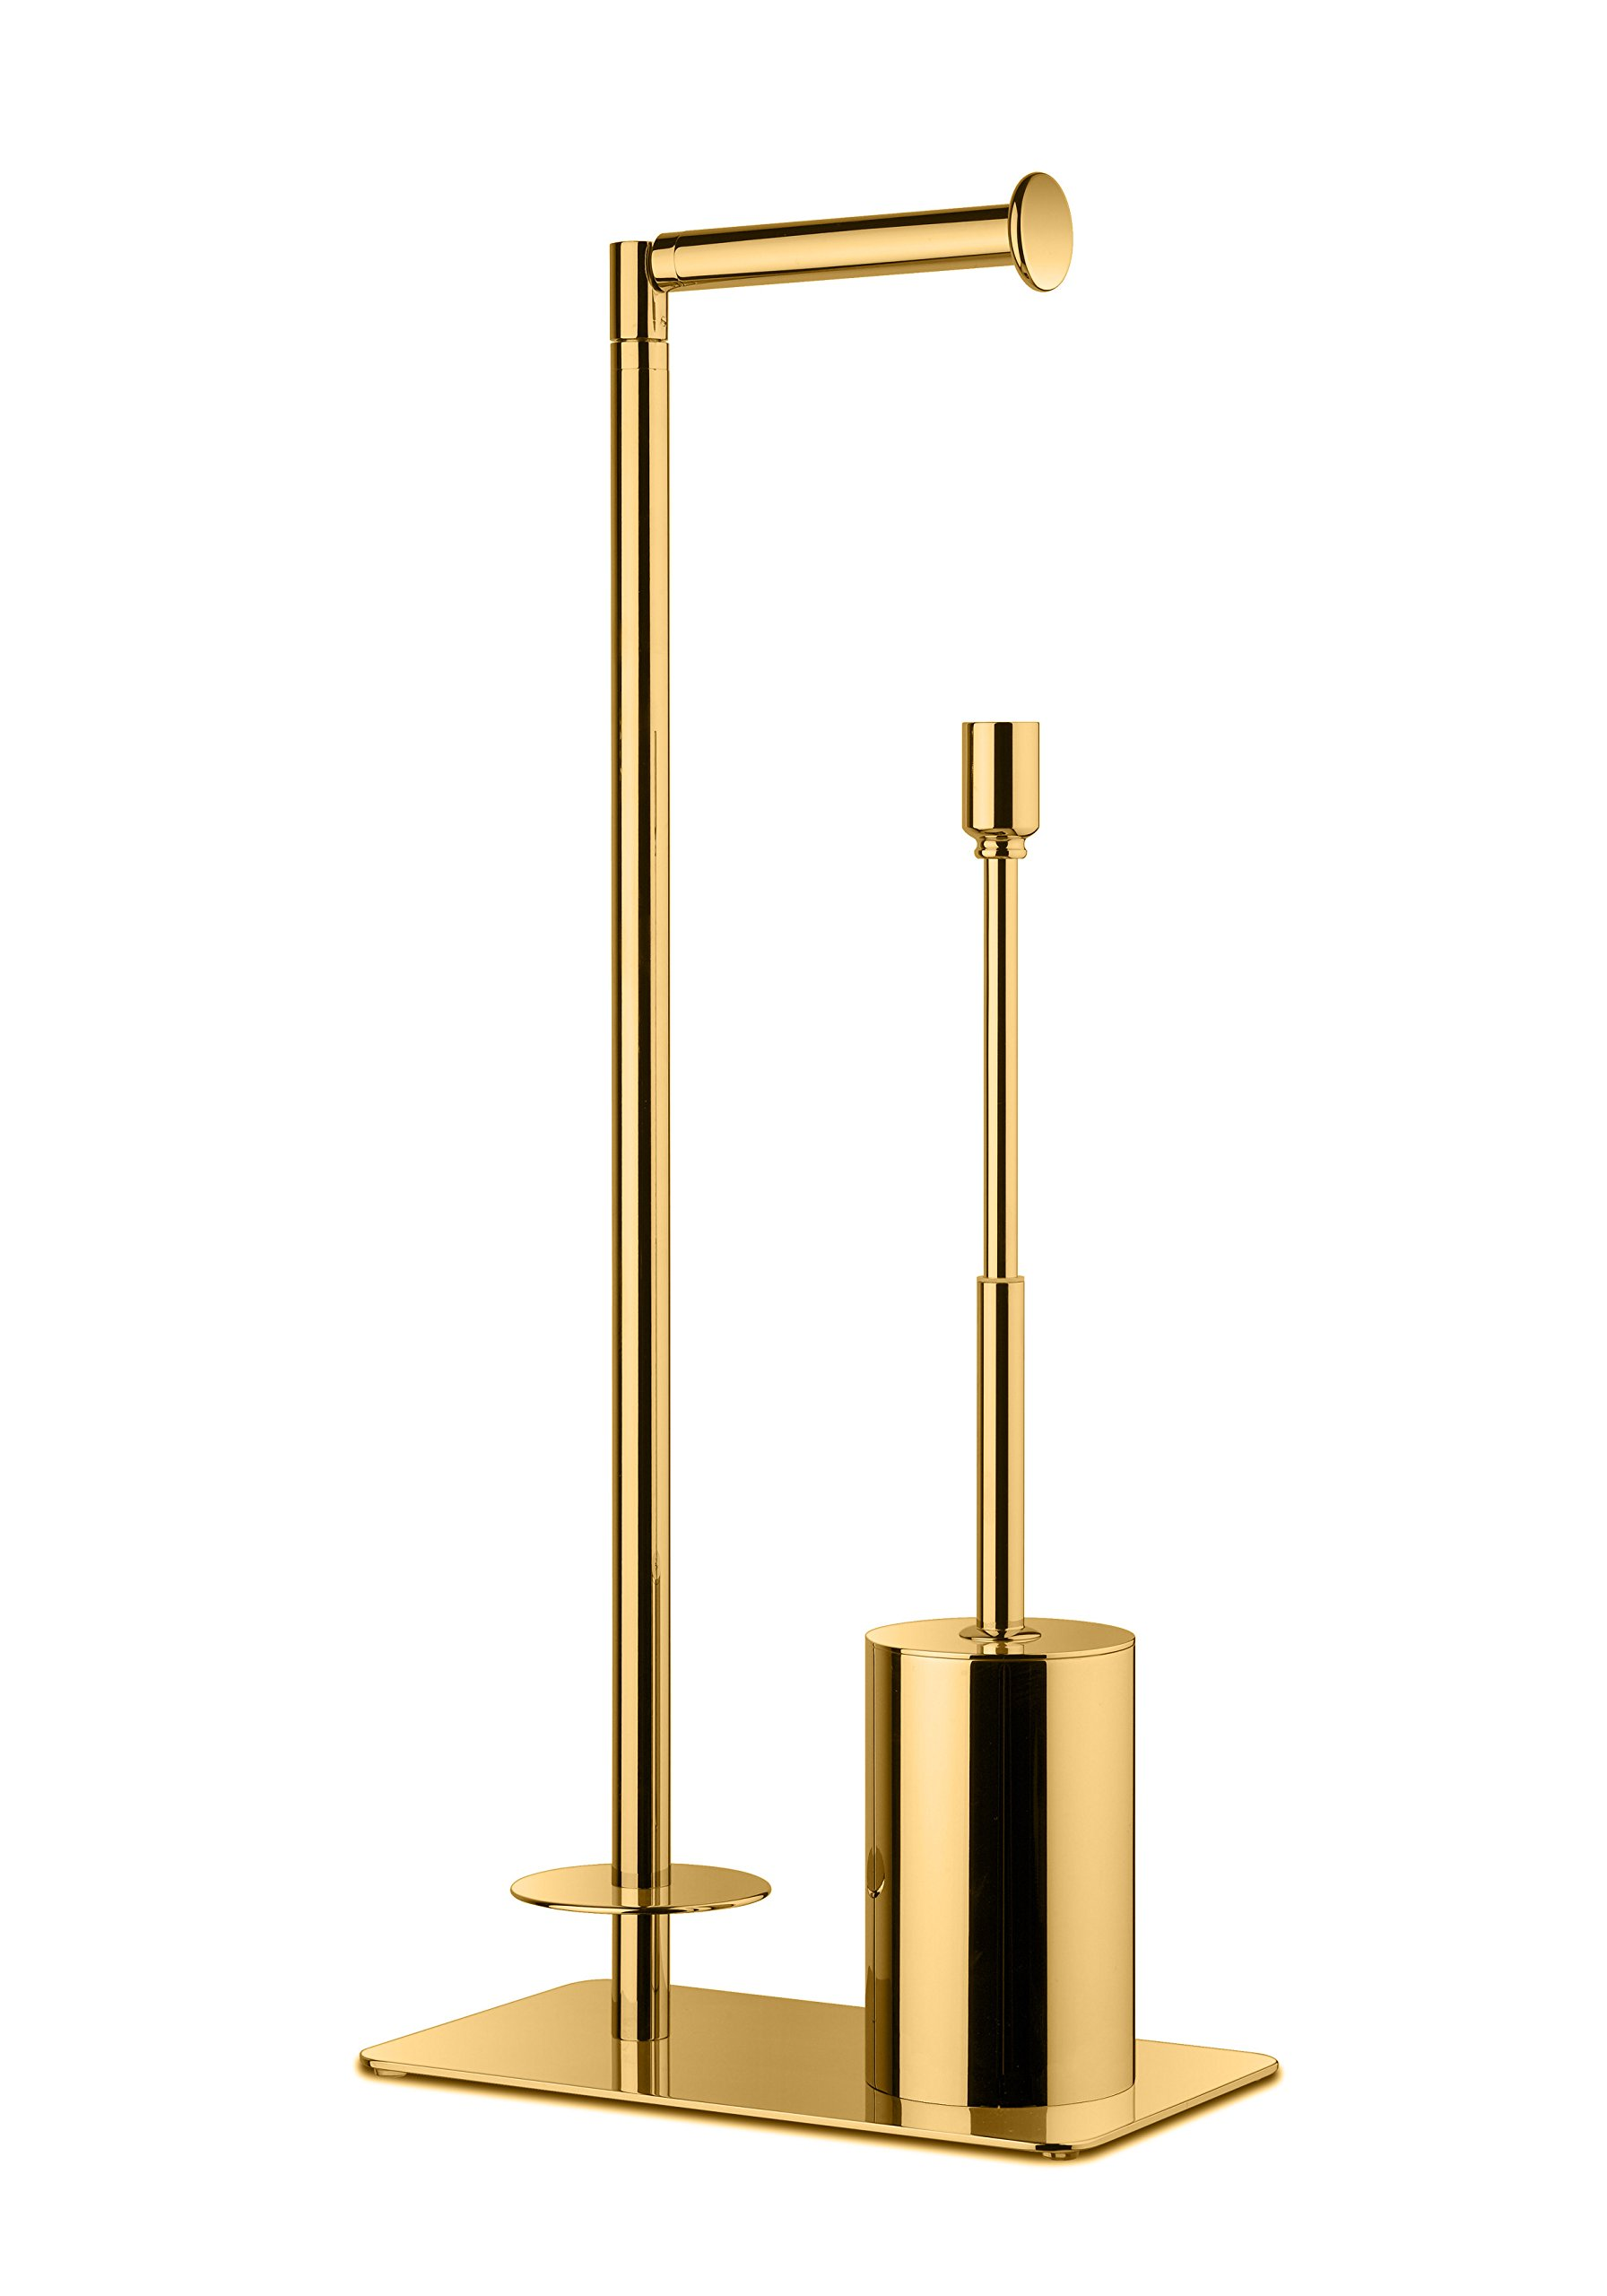 Standing Toilet Brush Bowl and Storage Spare Toilet Paper Holder Set, Brass (Polished Gold)